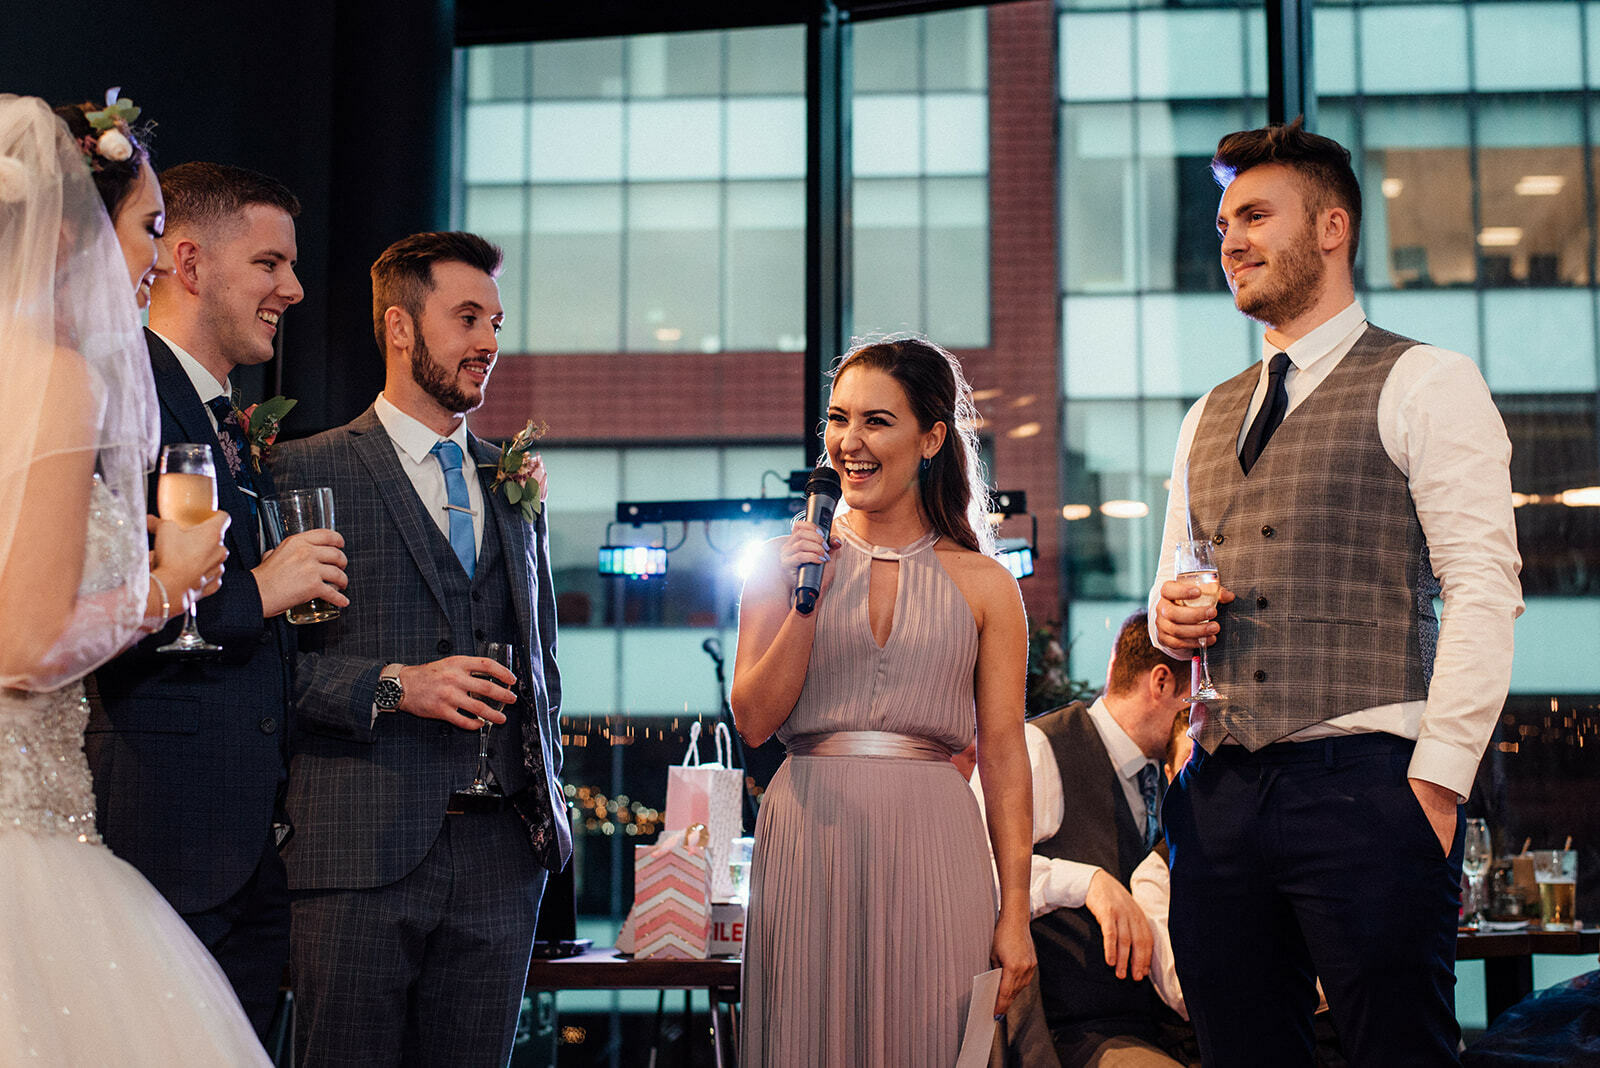 a bridesmaid laughs during her speech at a wedding in HOMEmcr